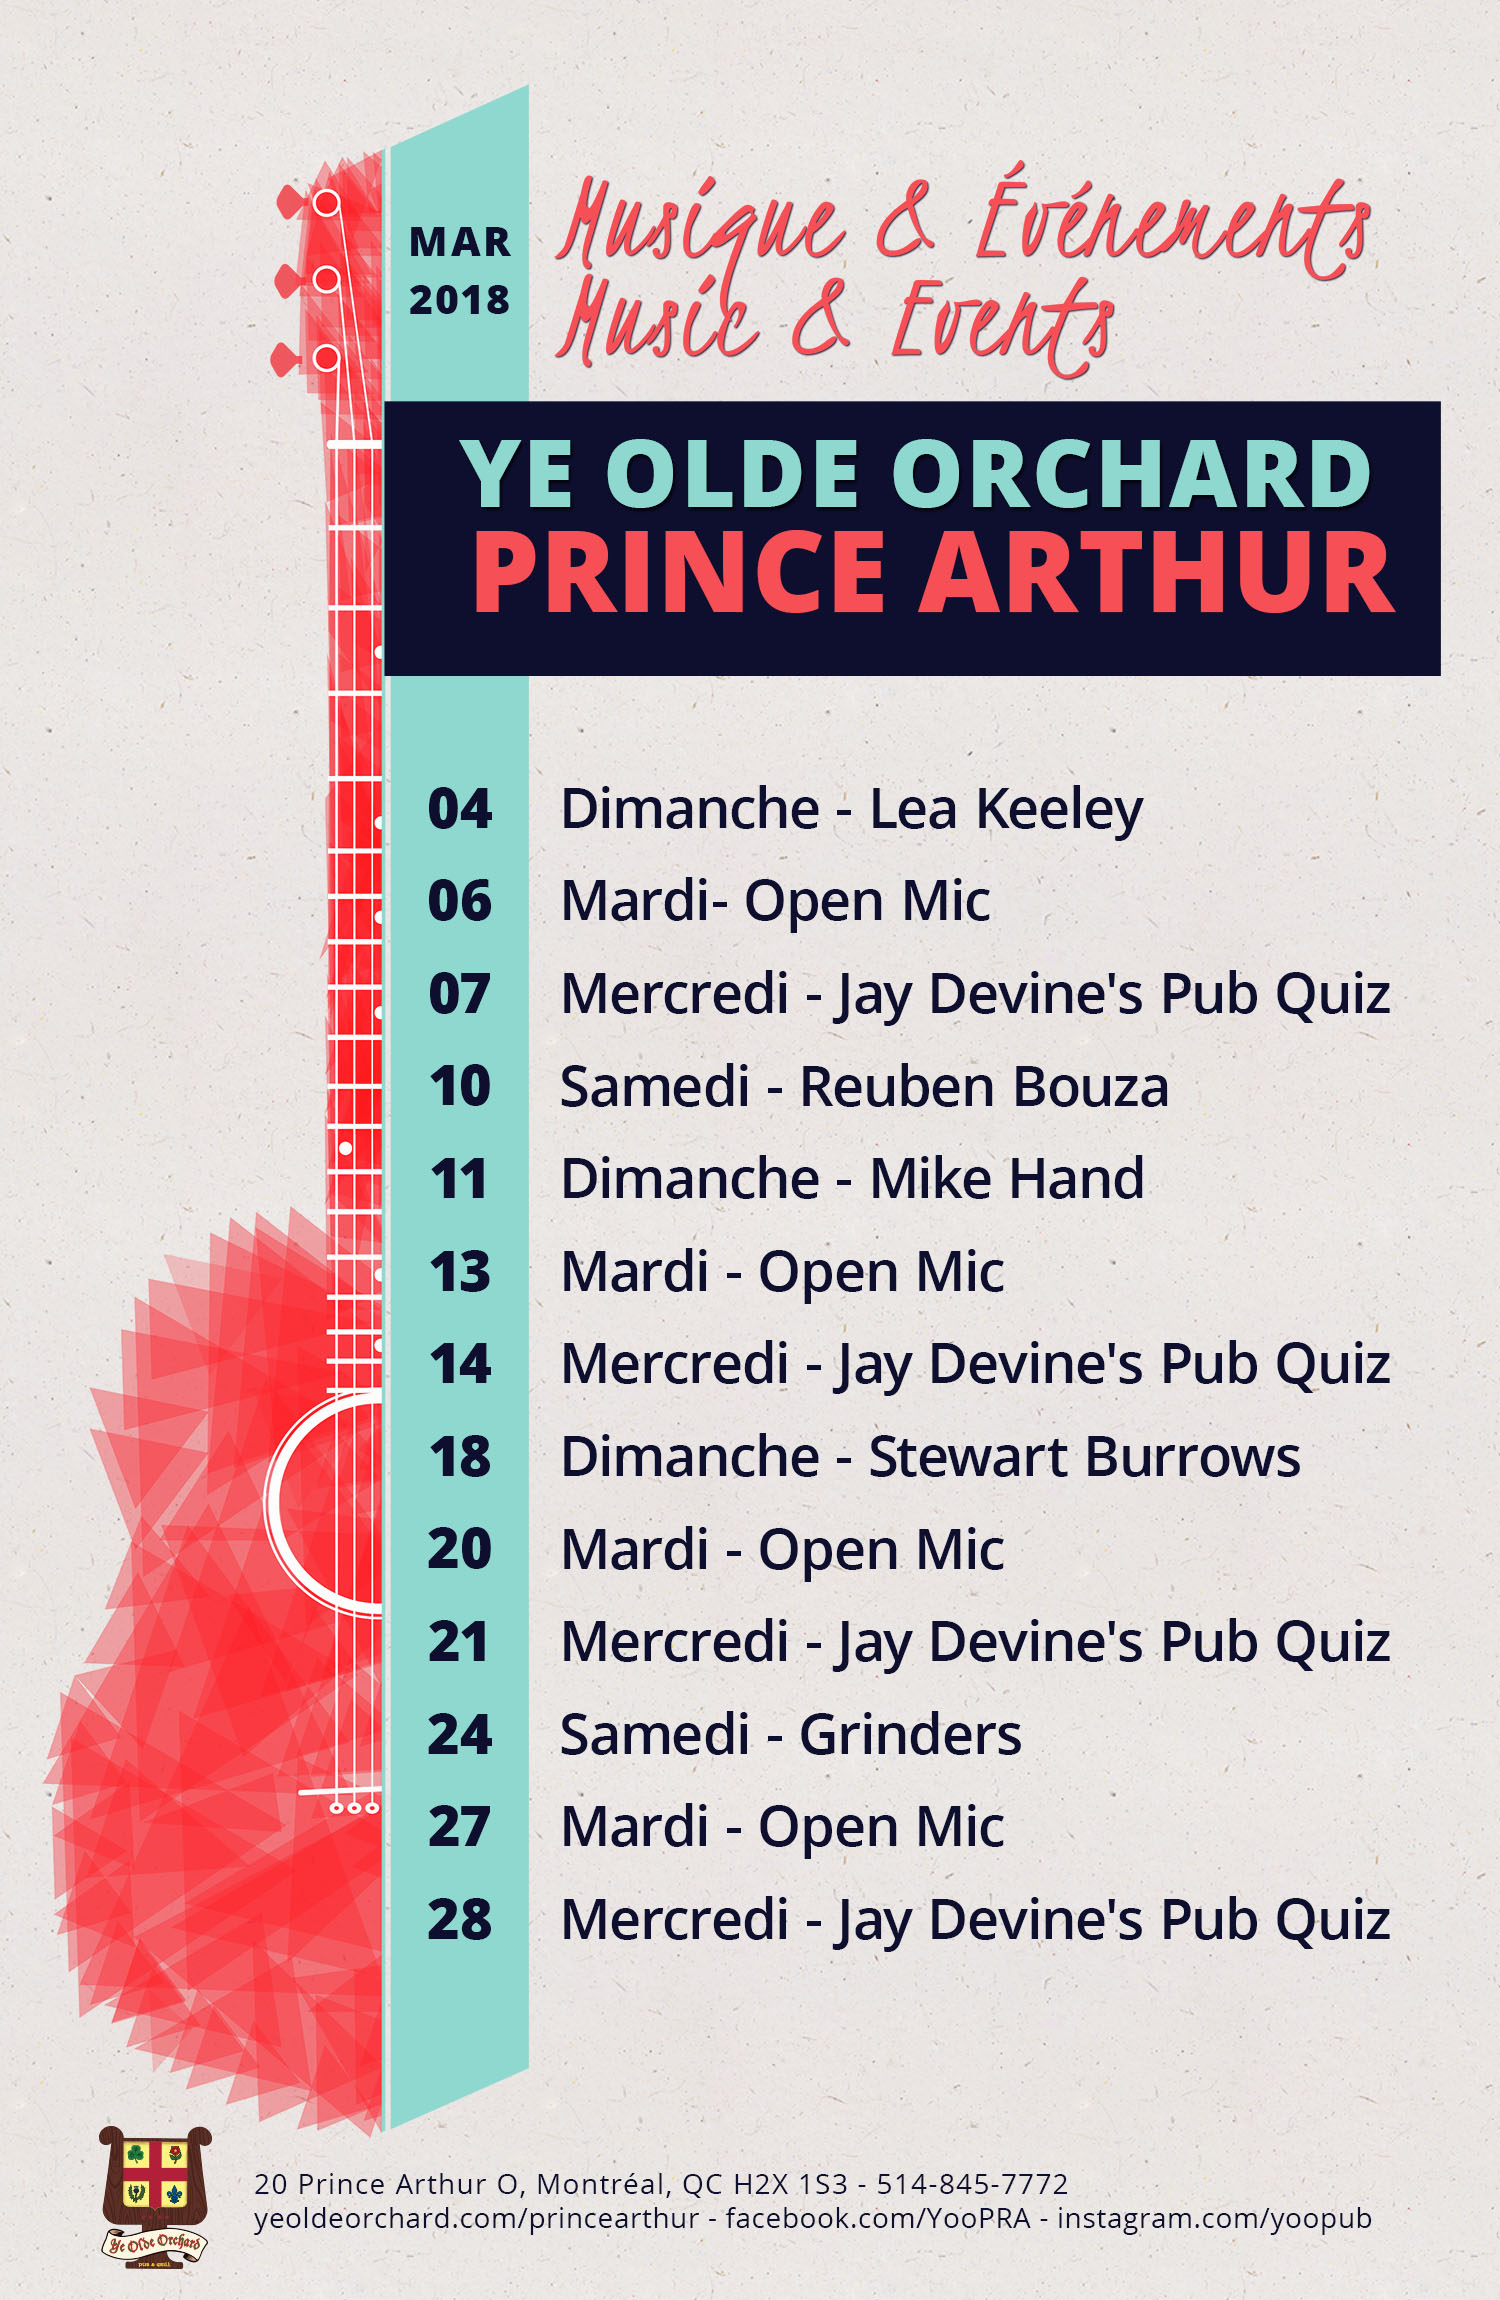 ye-olde-orchard-pub-music-and-events-calendar-prince-arthur-web